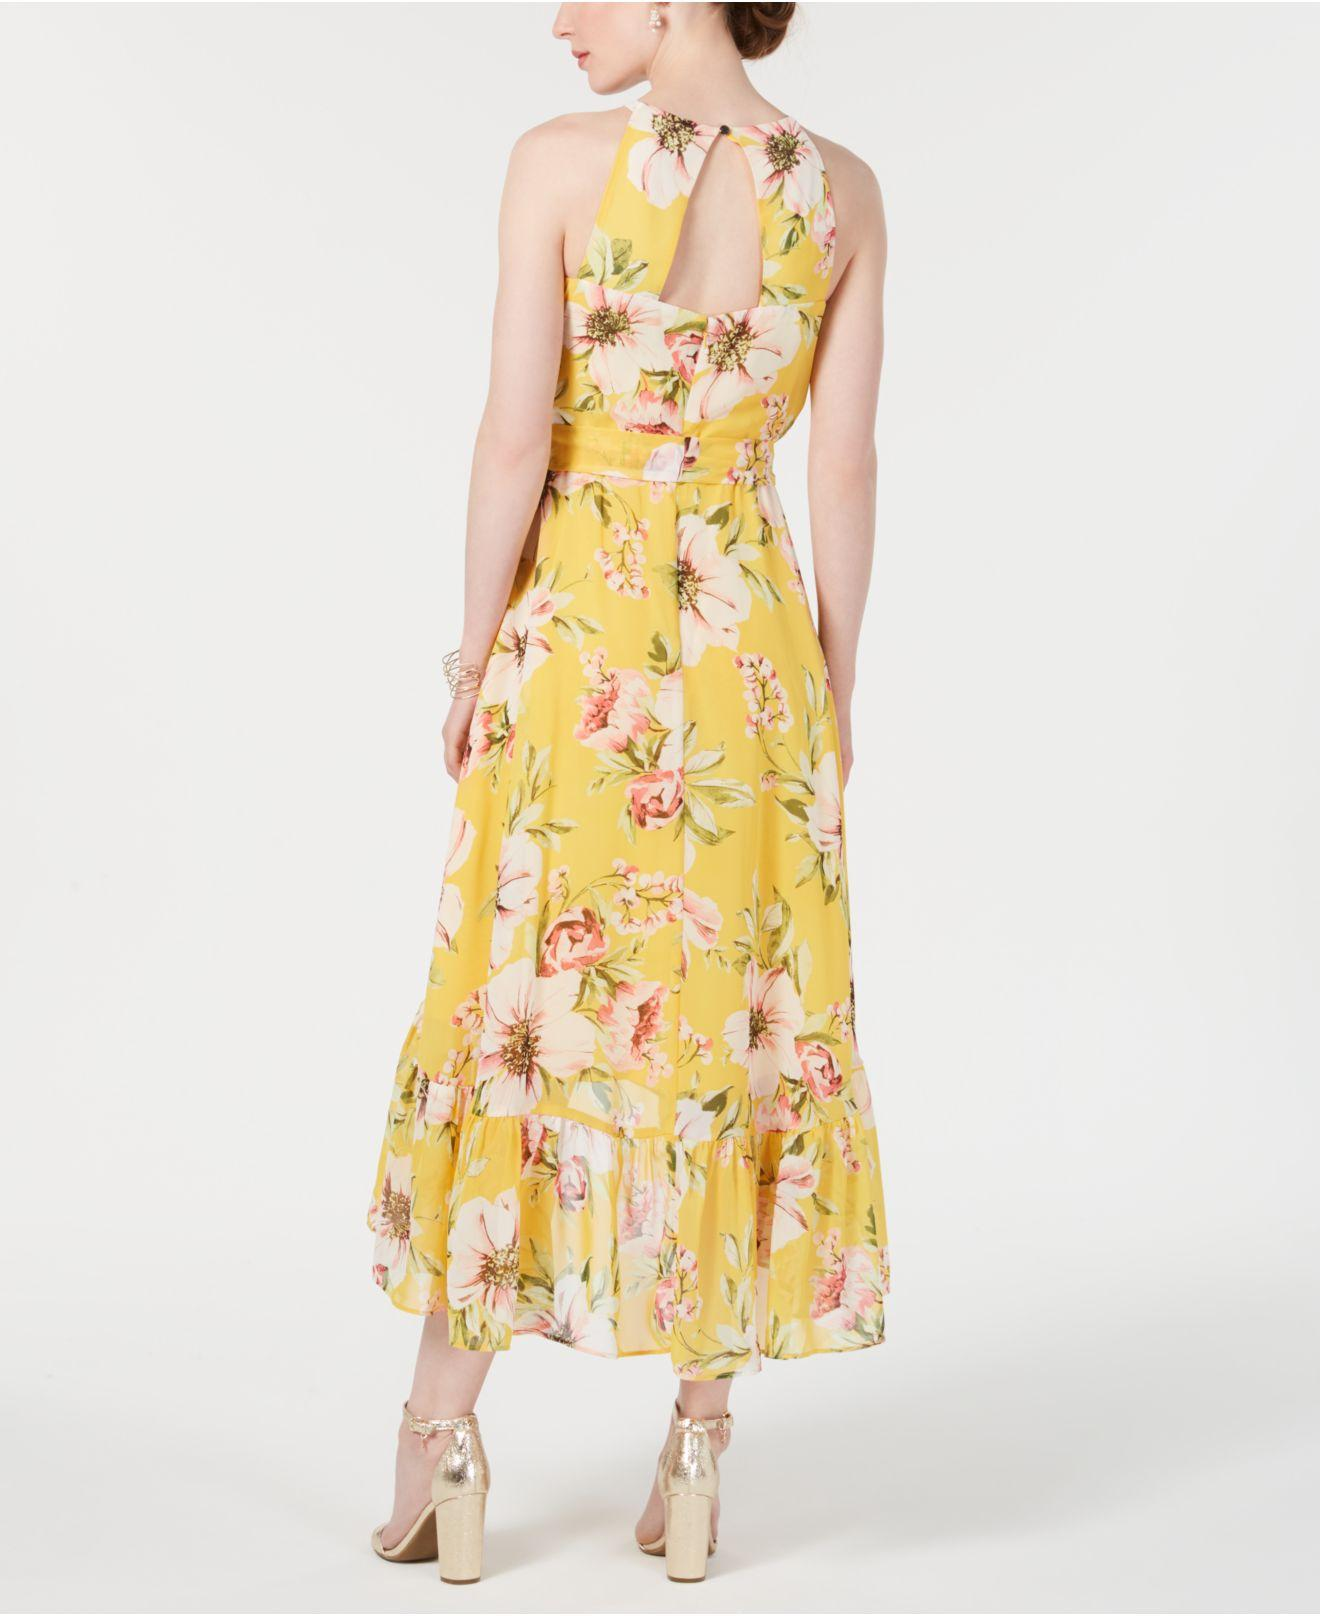 1cabd0c9d3 Lyst - Vince Camuto High-low Floral Flounce Maxi Dress in Yellow